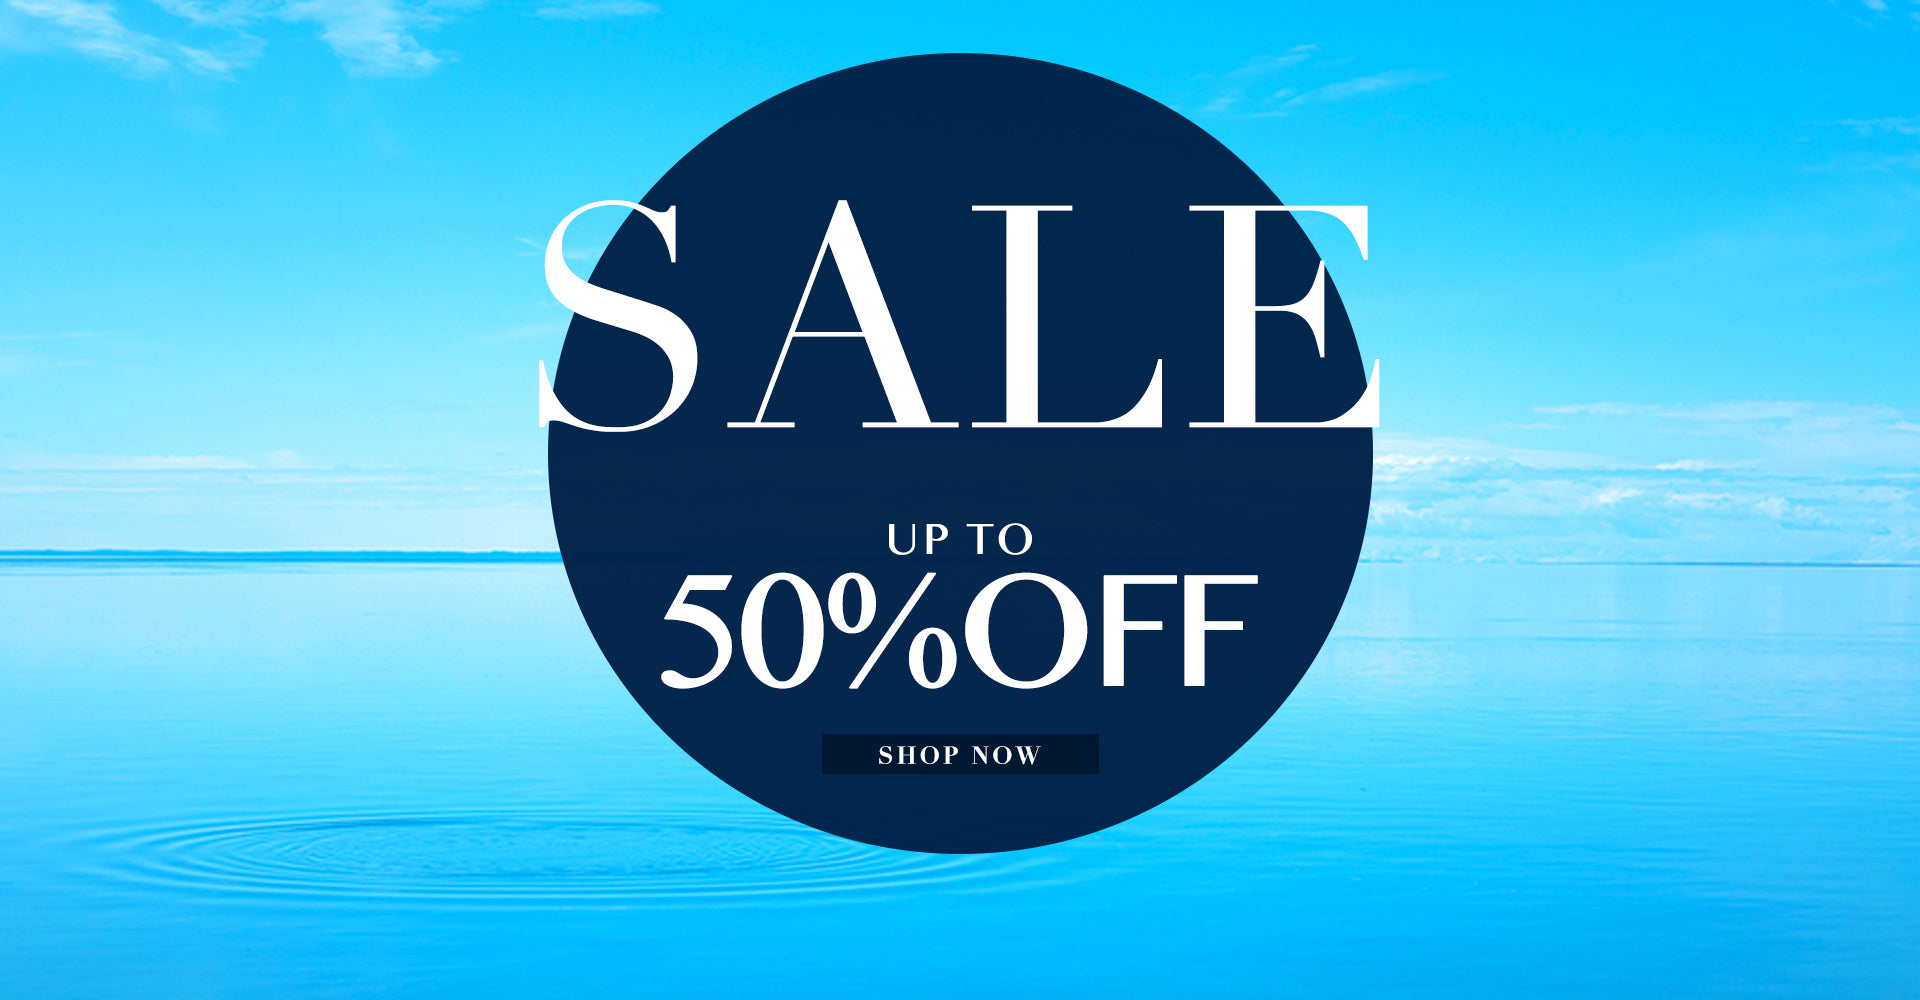 The Annual Sale Starts Now Up to 50% Off Mens & Womens Online & in All Stores Shop the 50% Off Sale